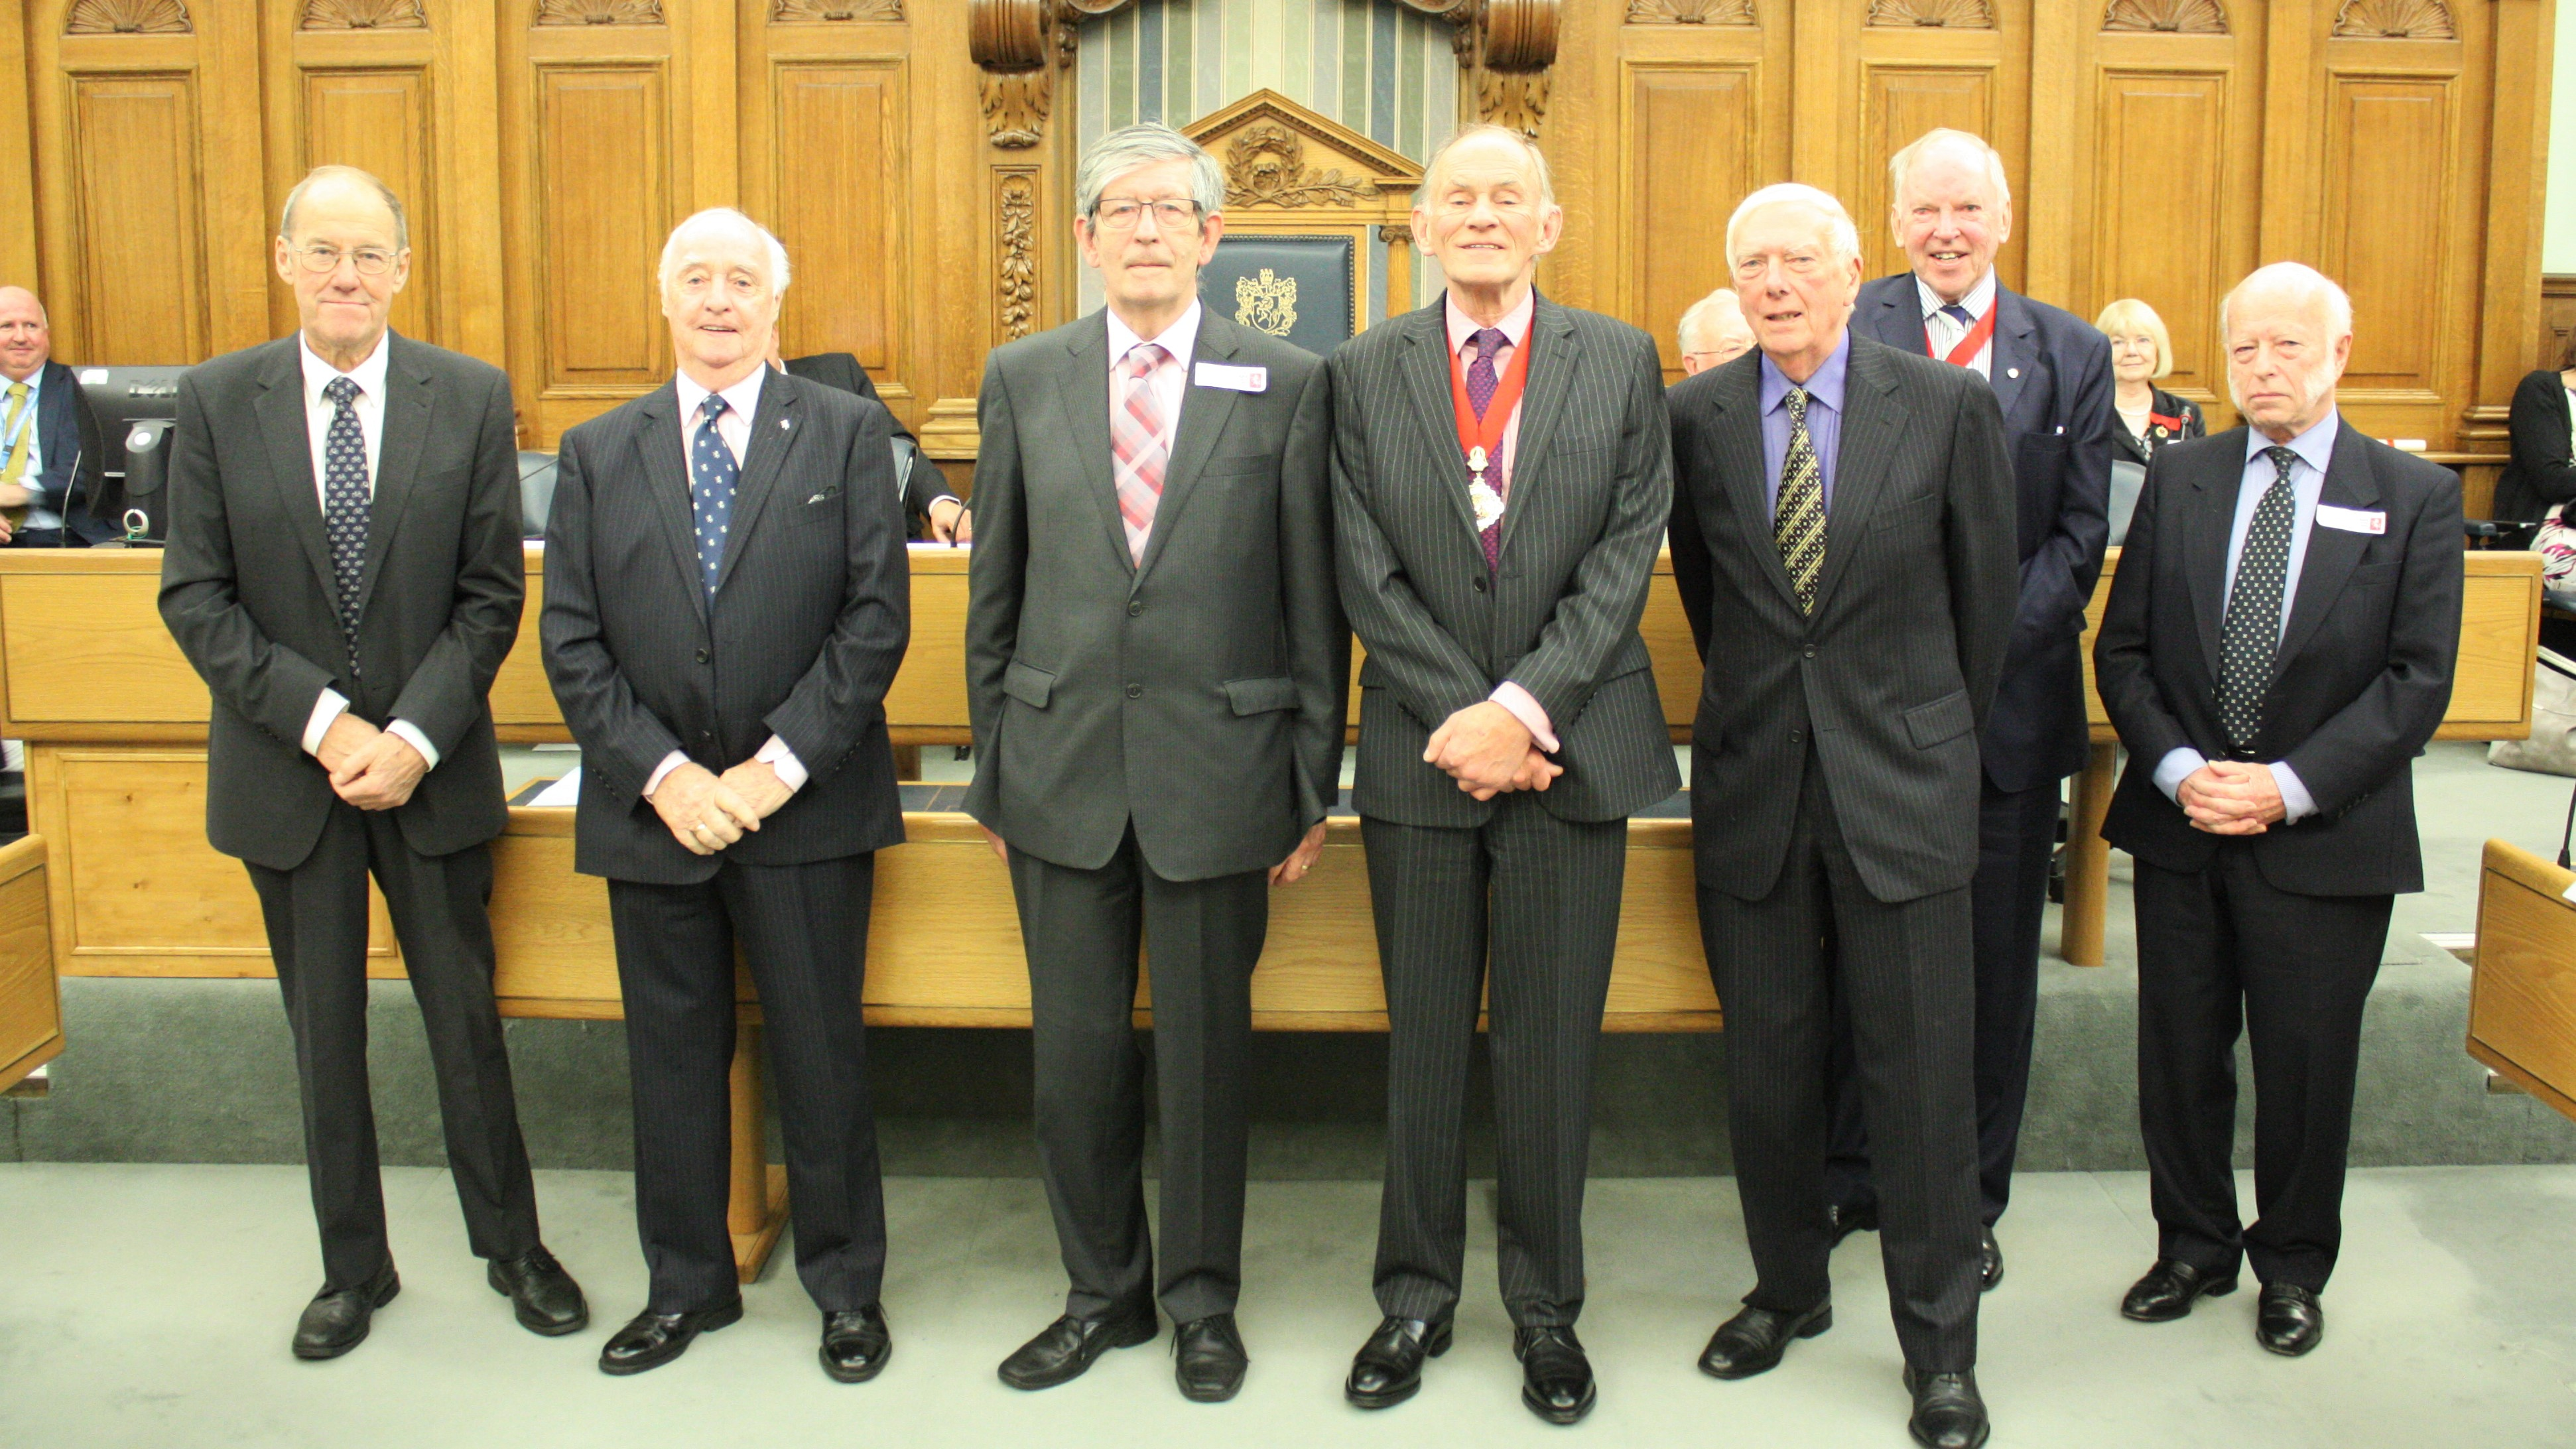 Seven former county councillors become Honorary Aldermen